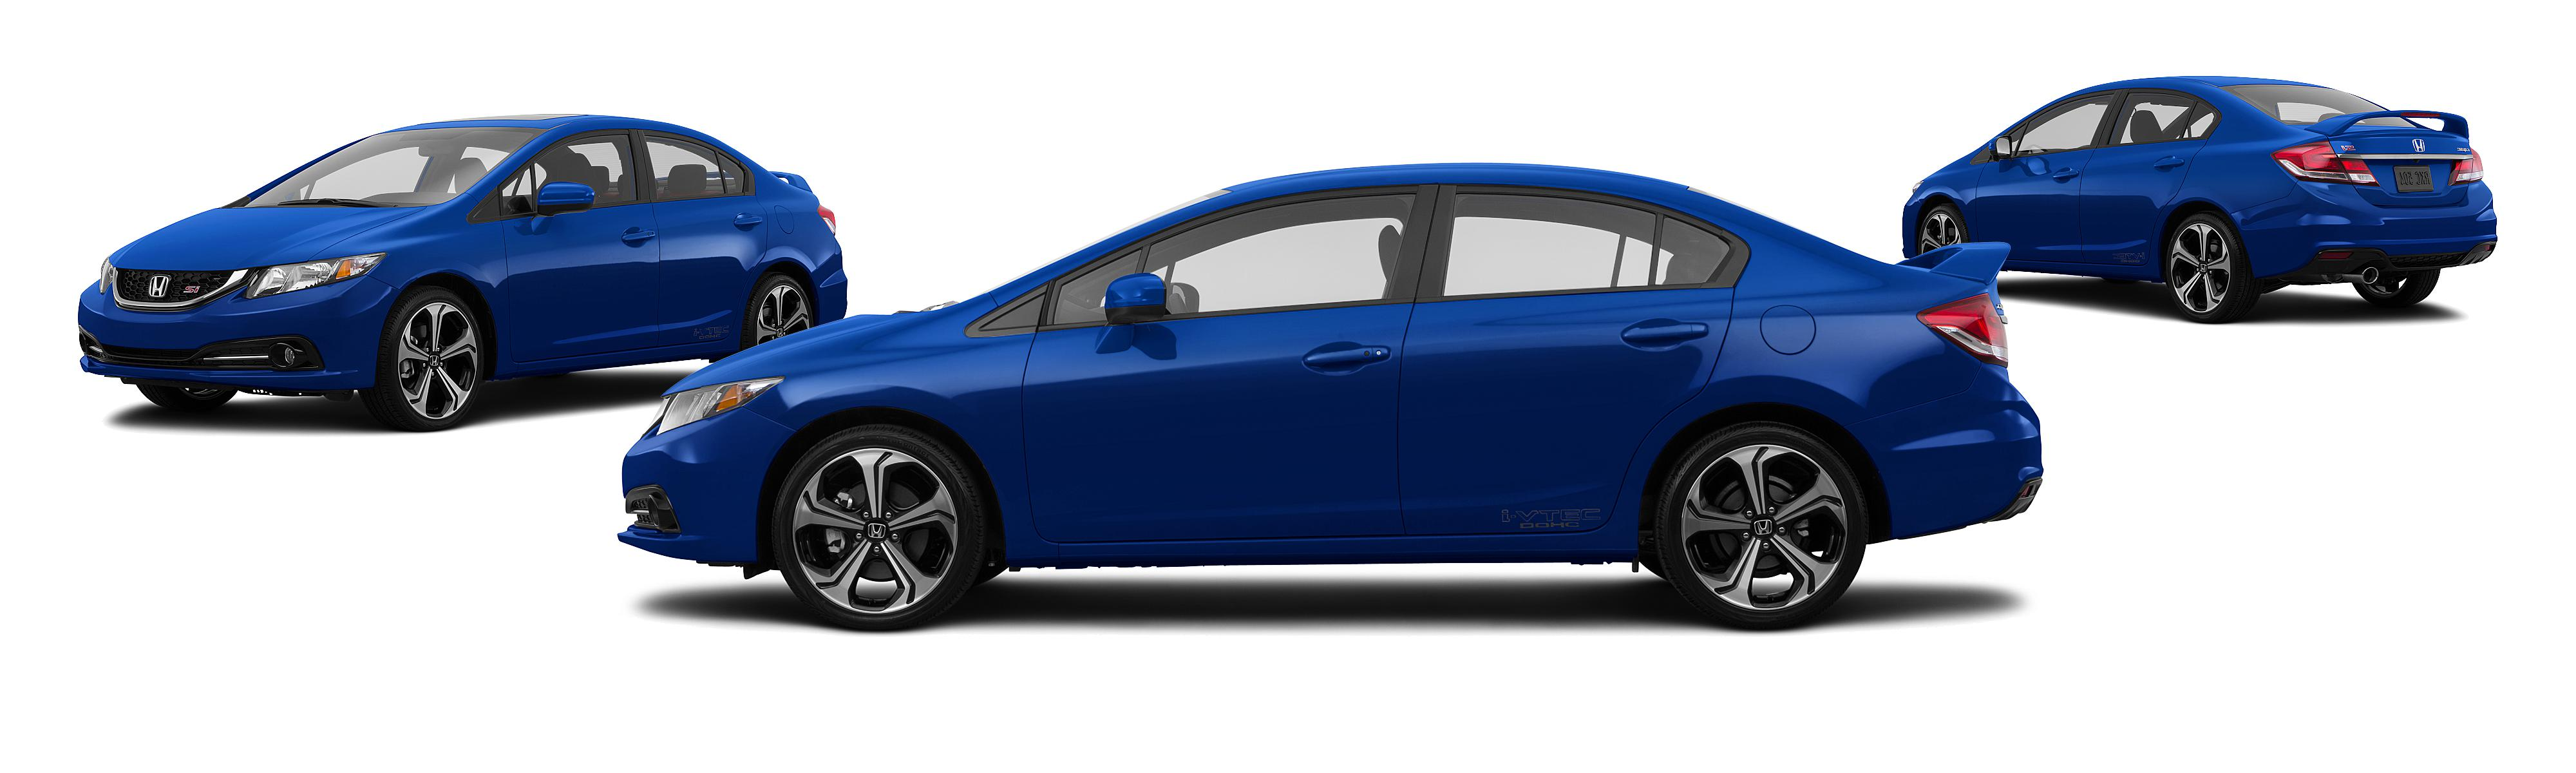 2014 honda civic si 4dr sedan research groovecar rh groovecar com